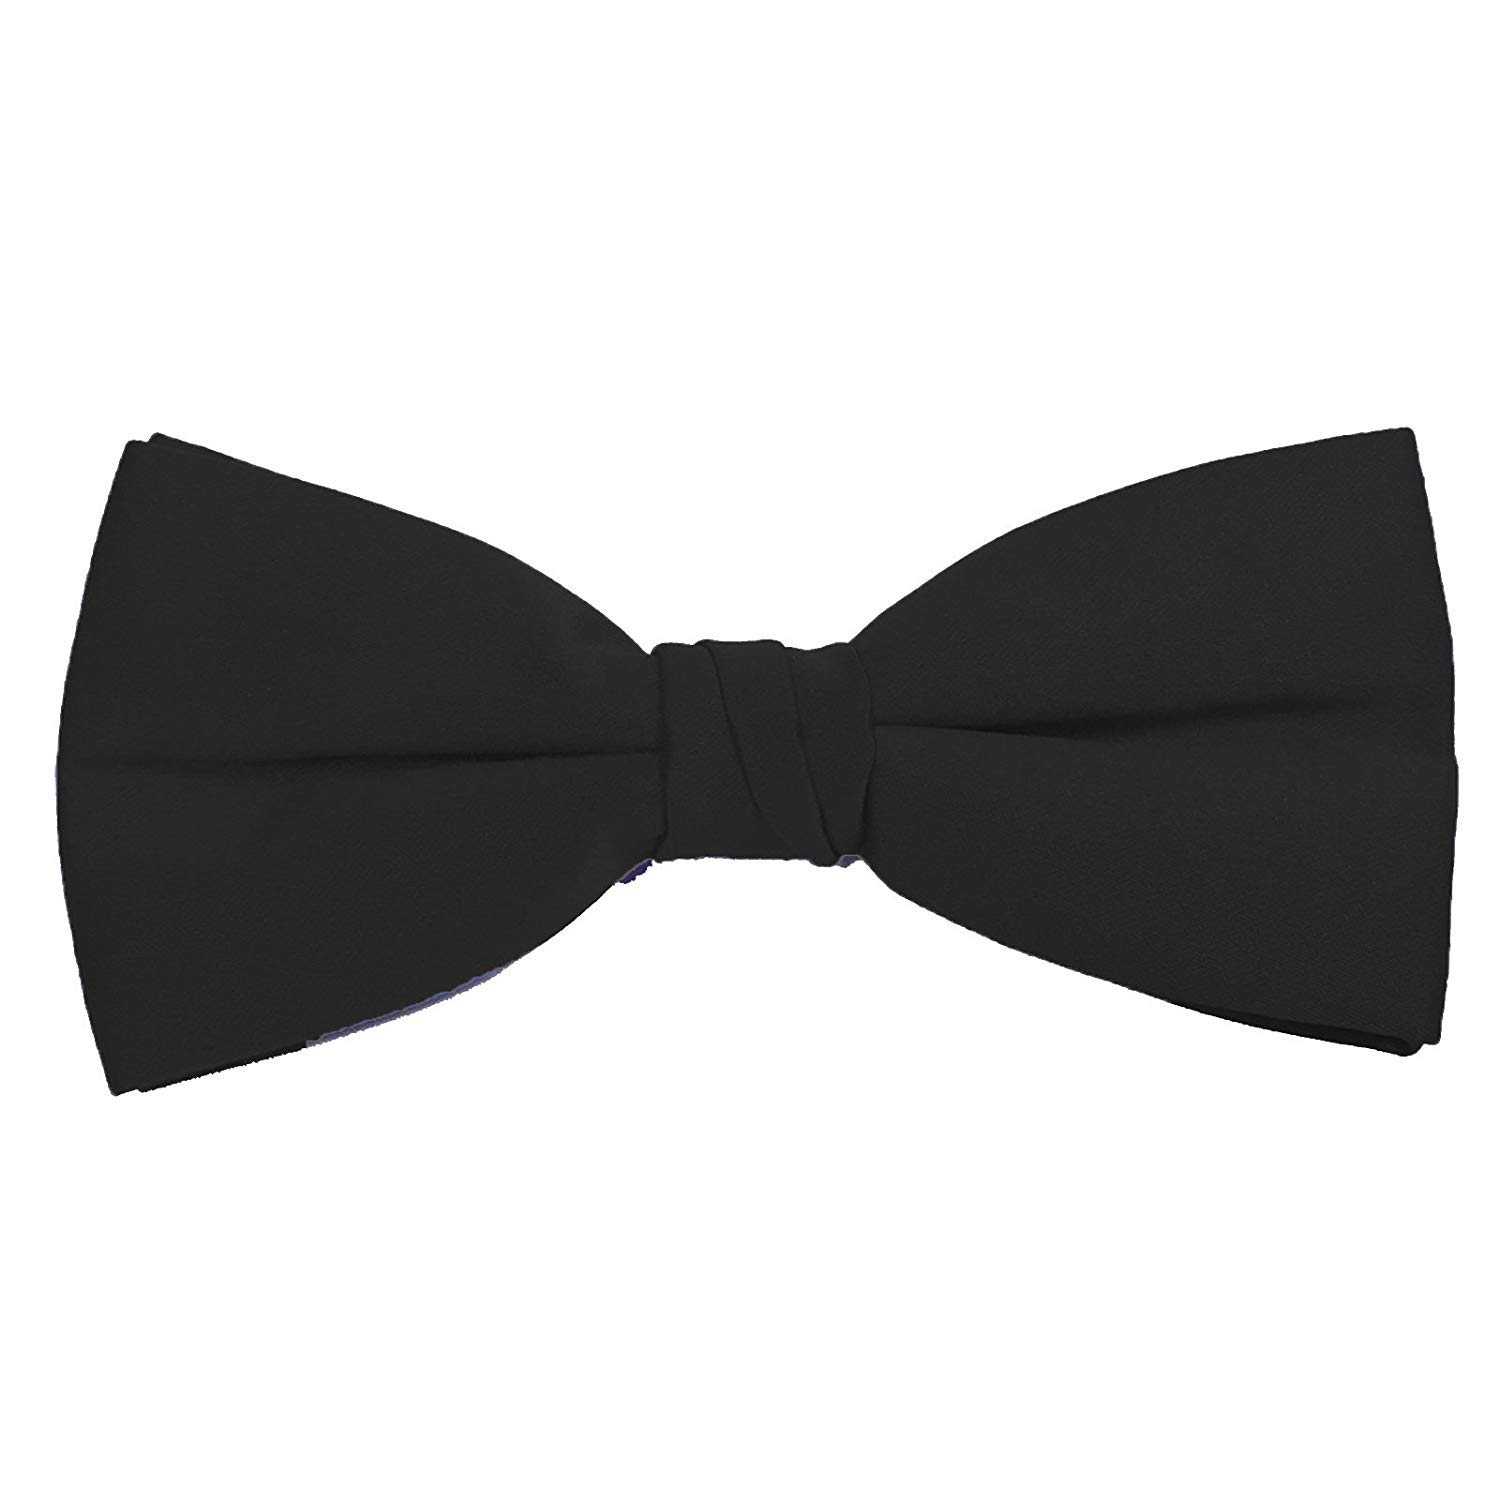 7448d566c23d1 Formal Black Satin Banded Men's Bow Tie